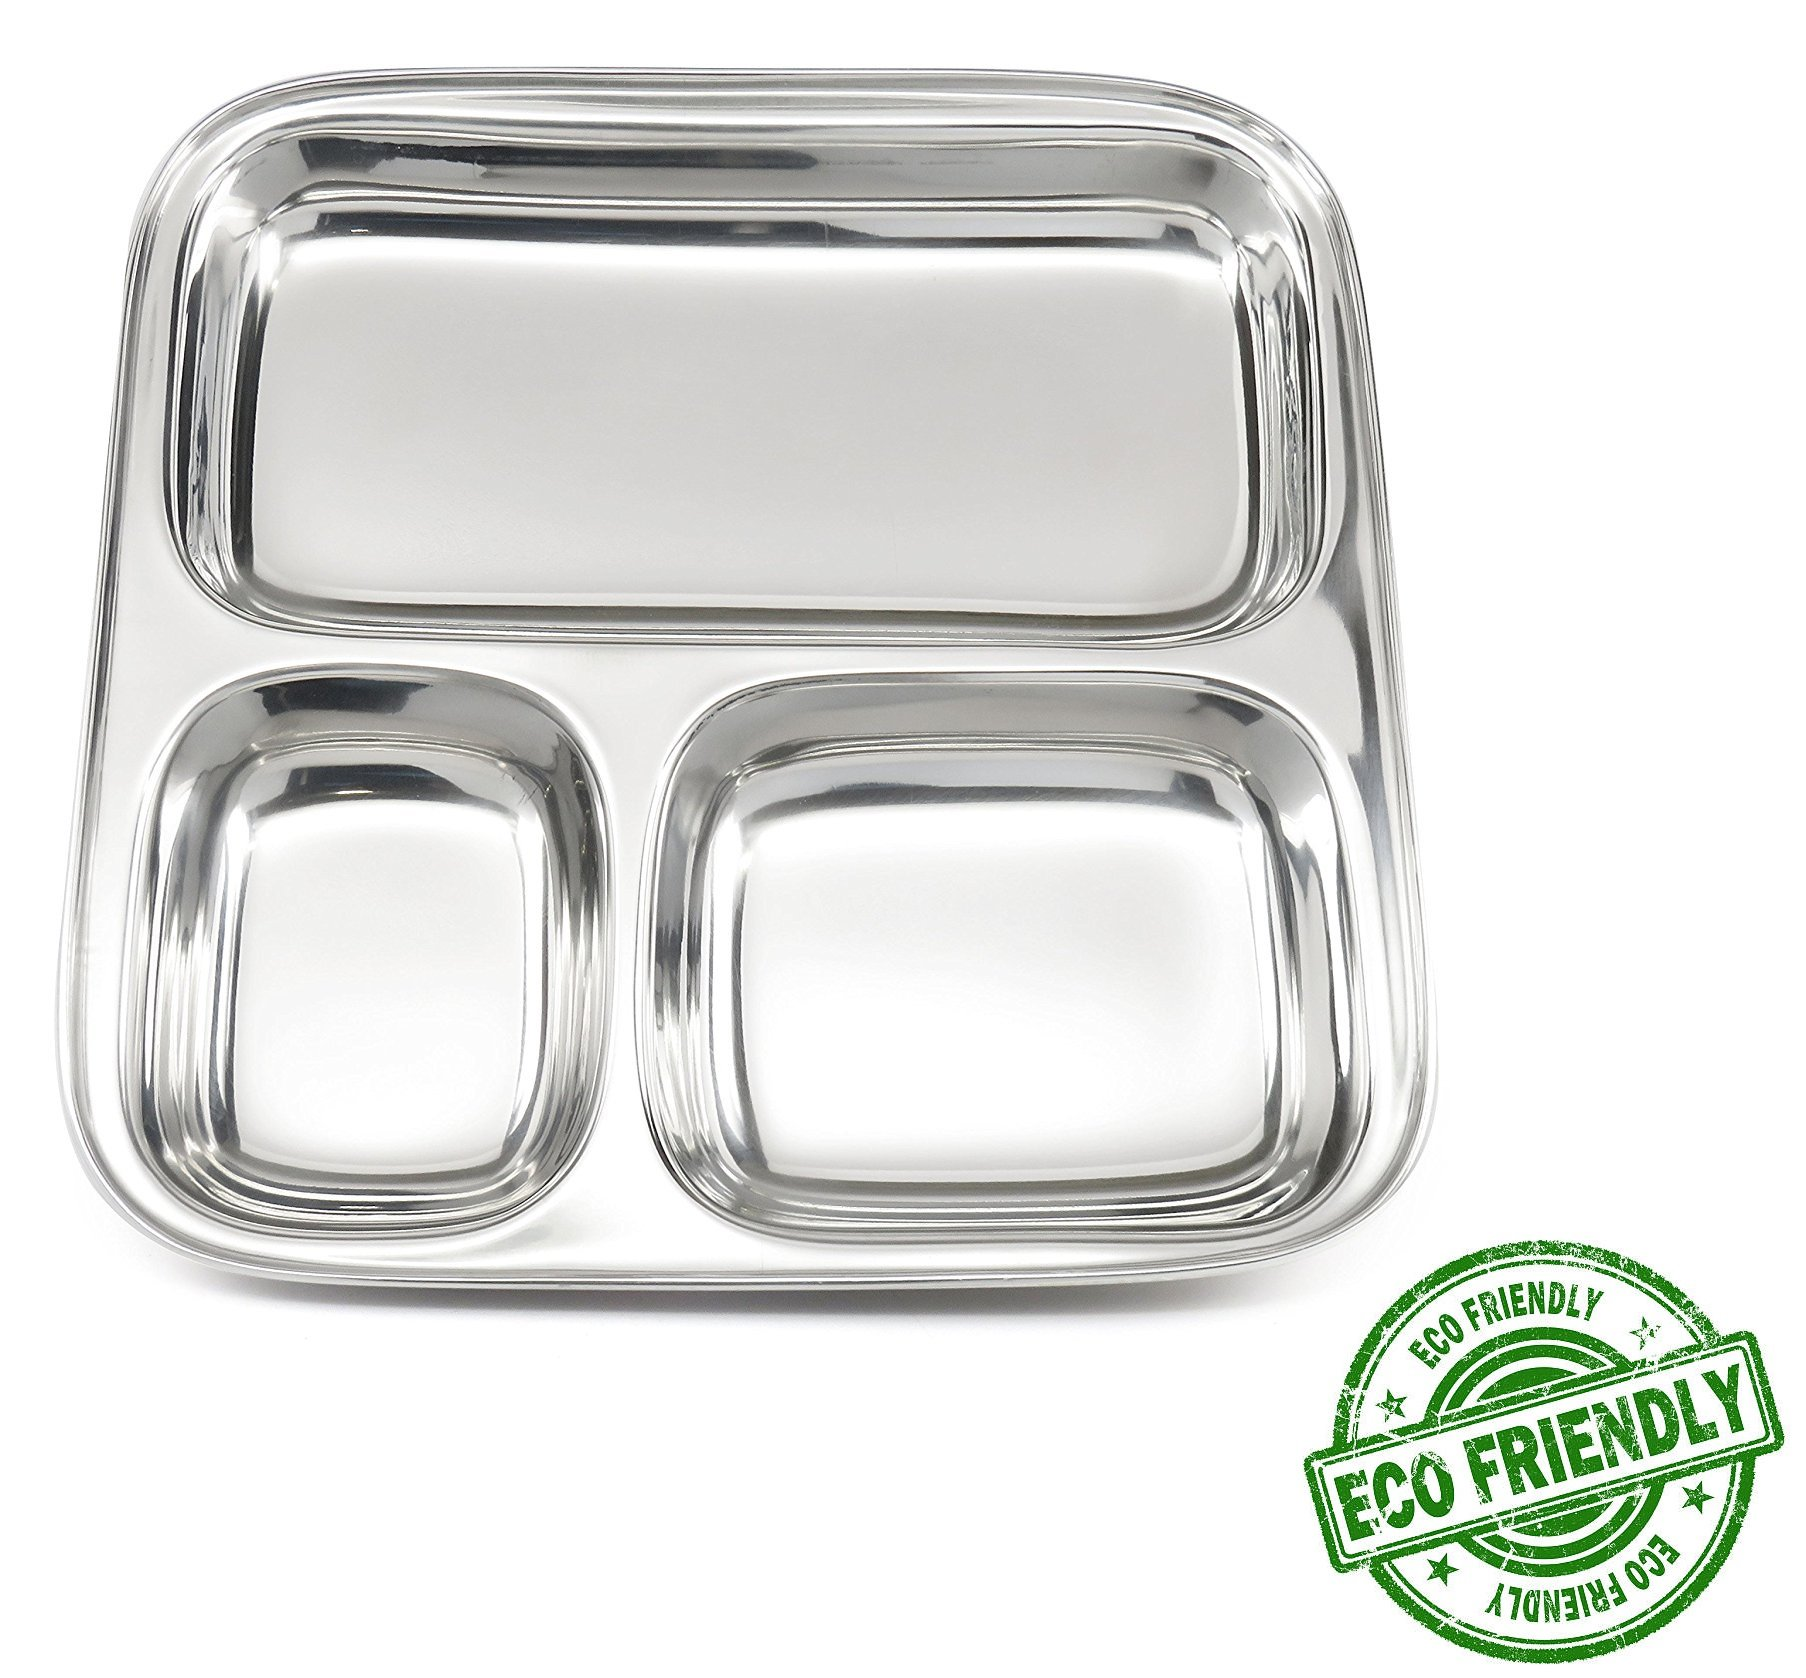 Lifestyle Block Stainless Steel Plastic-Free 3 Compartment Stainless Steel Kid's Plate – Small Divided Kid Plate by Lifestyle Block